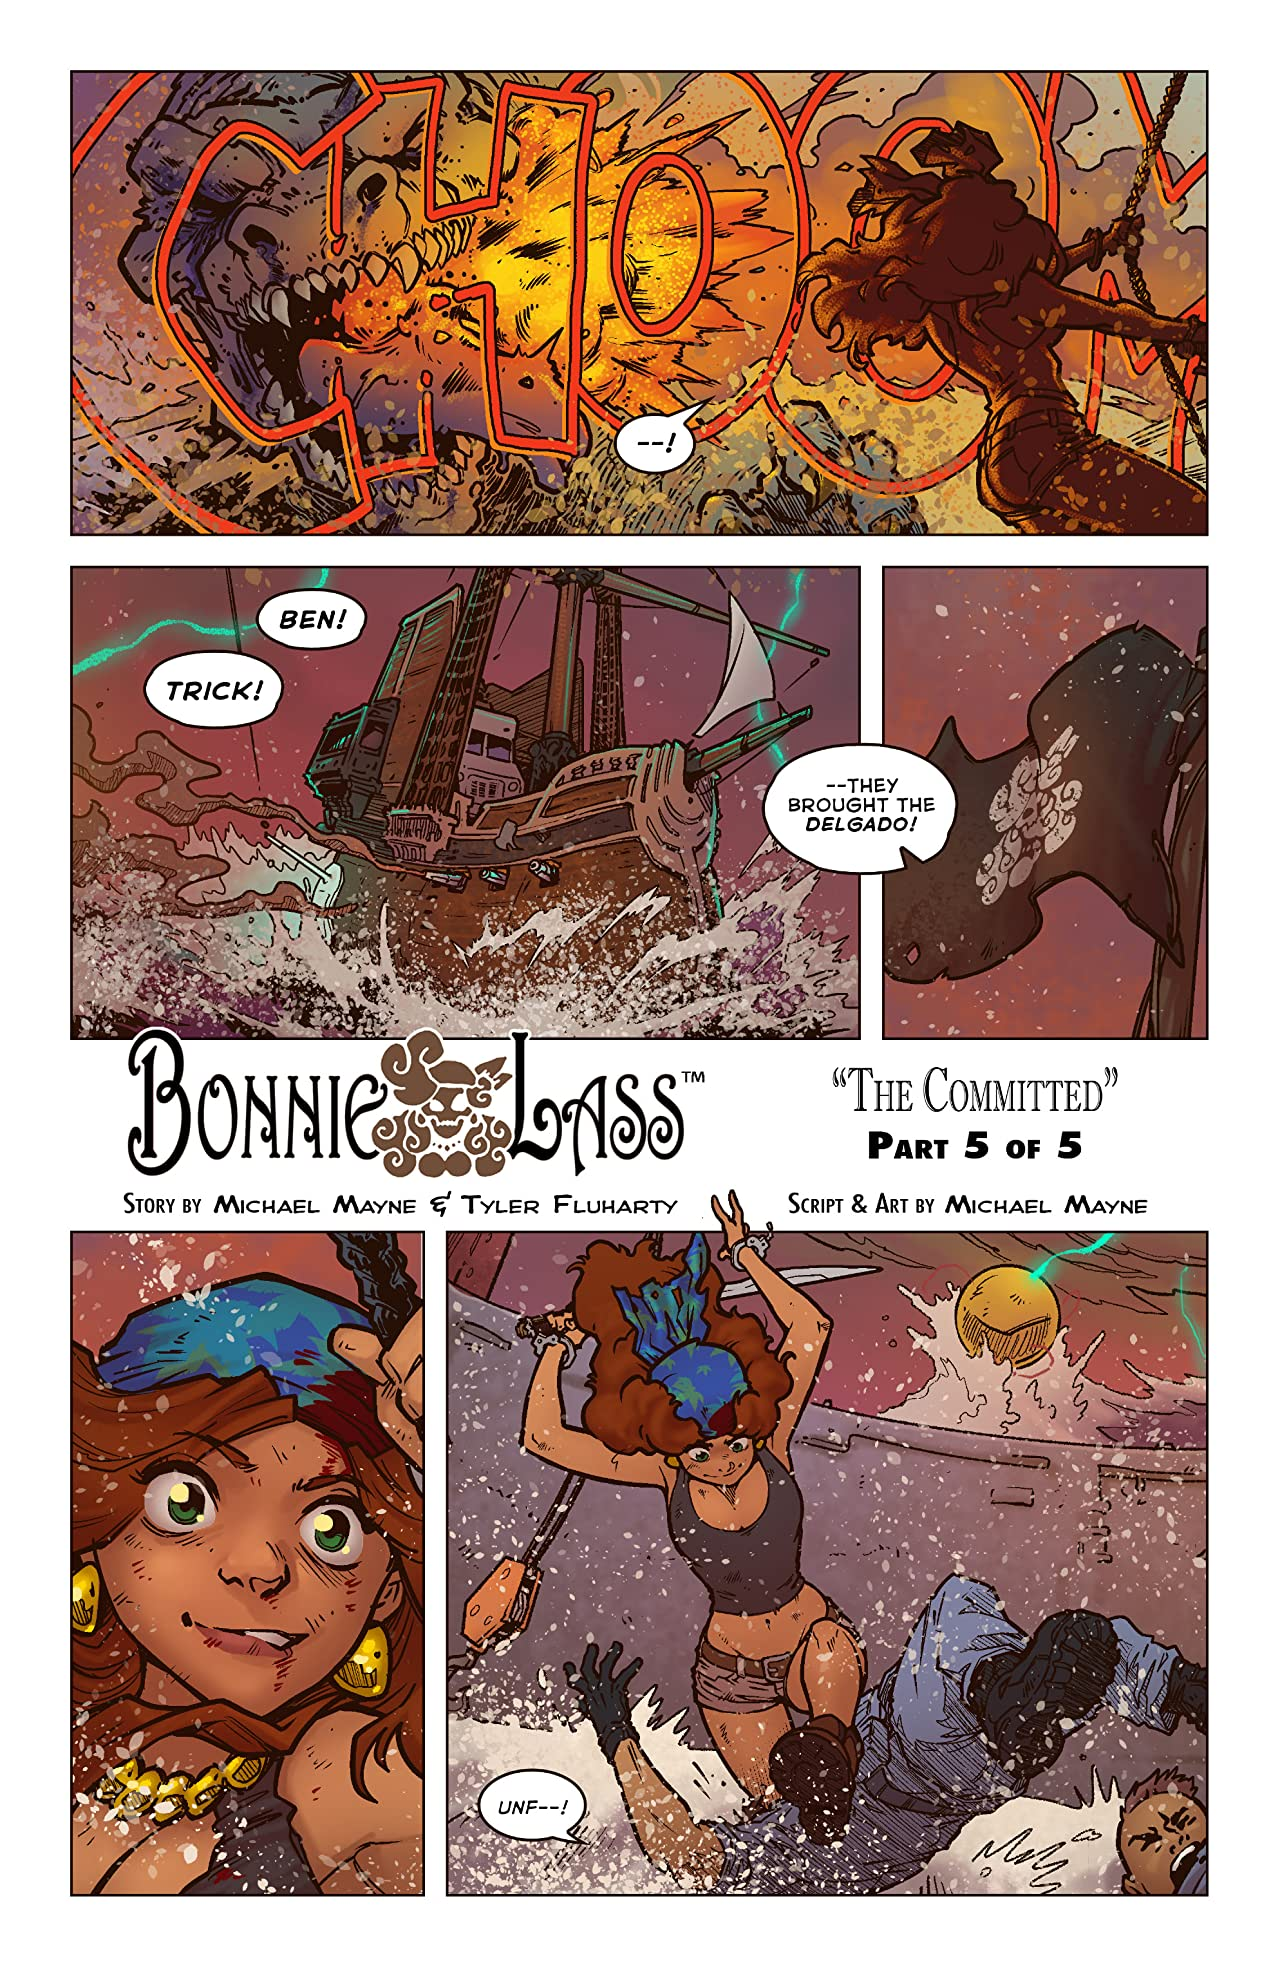 Bonnie Lass: The Committed #5